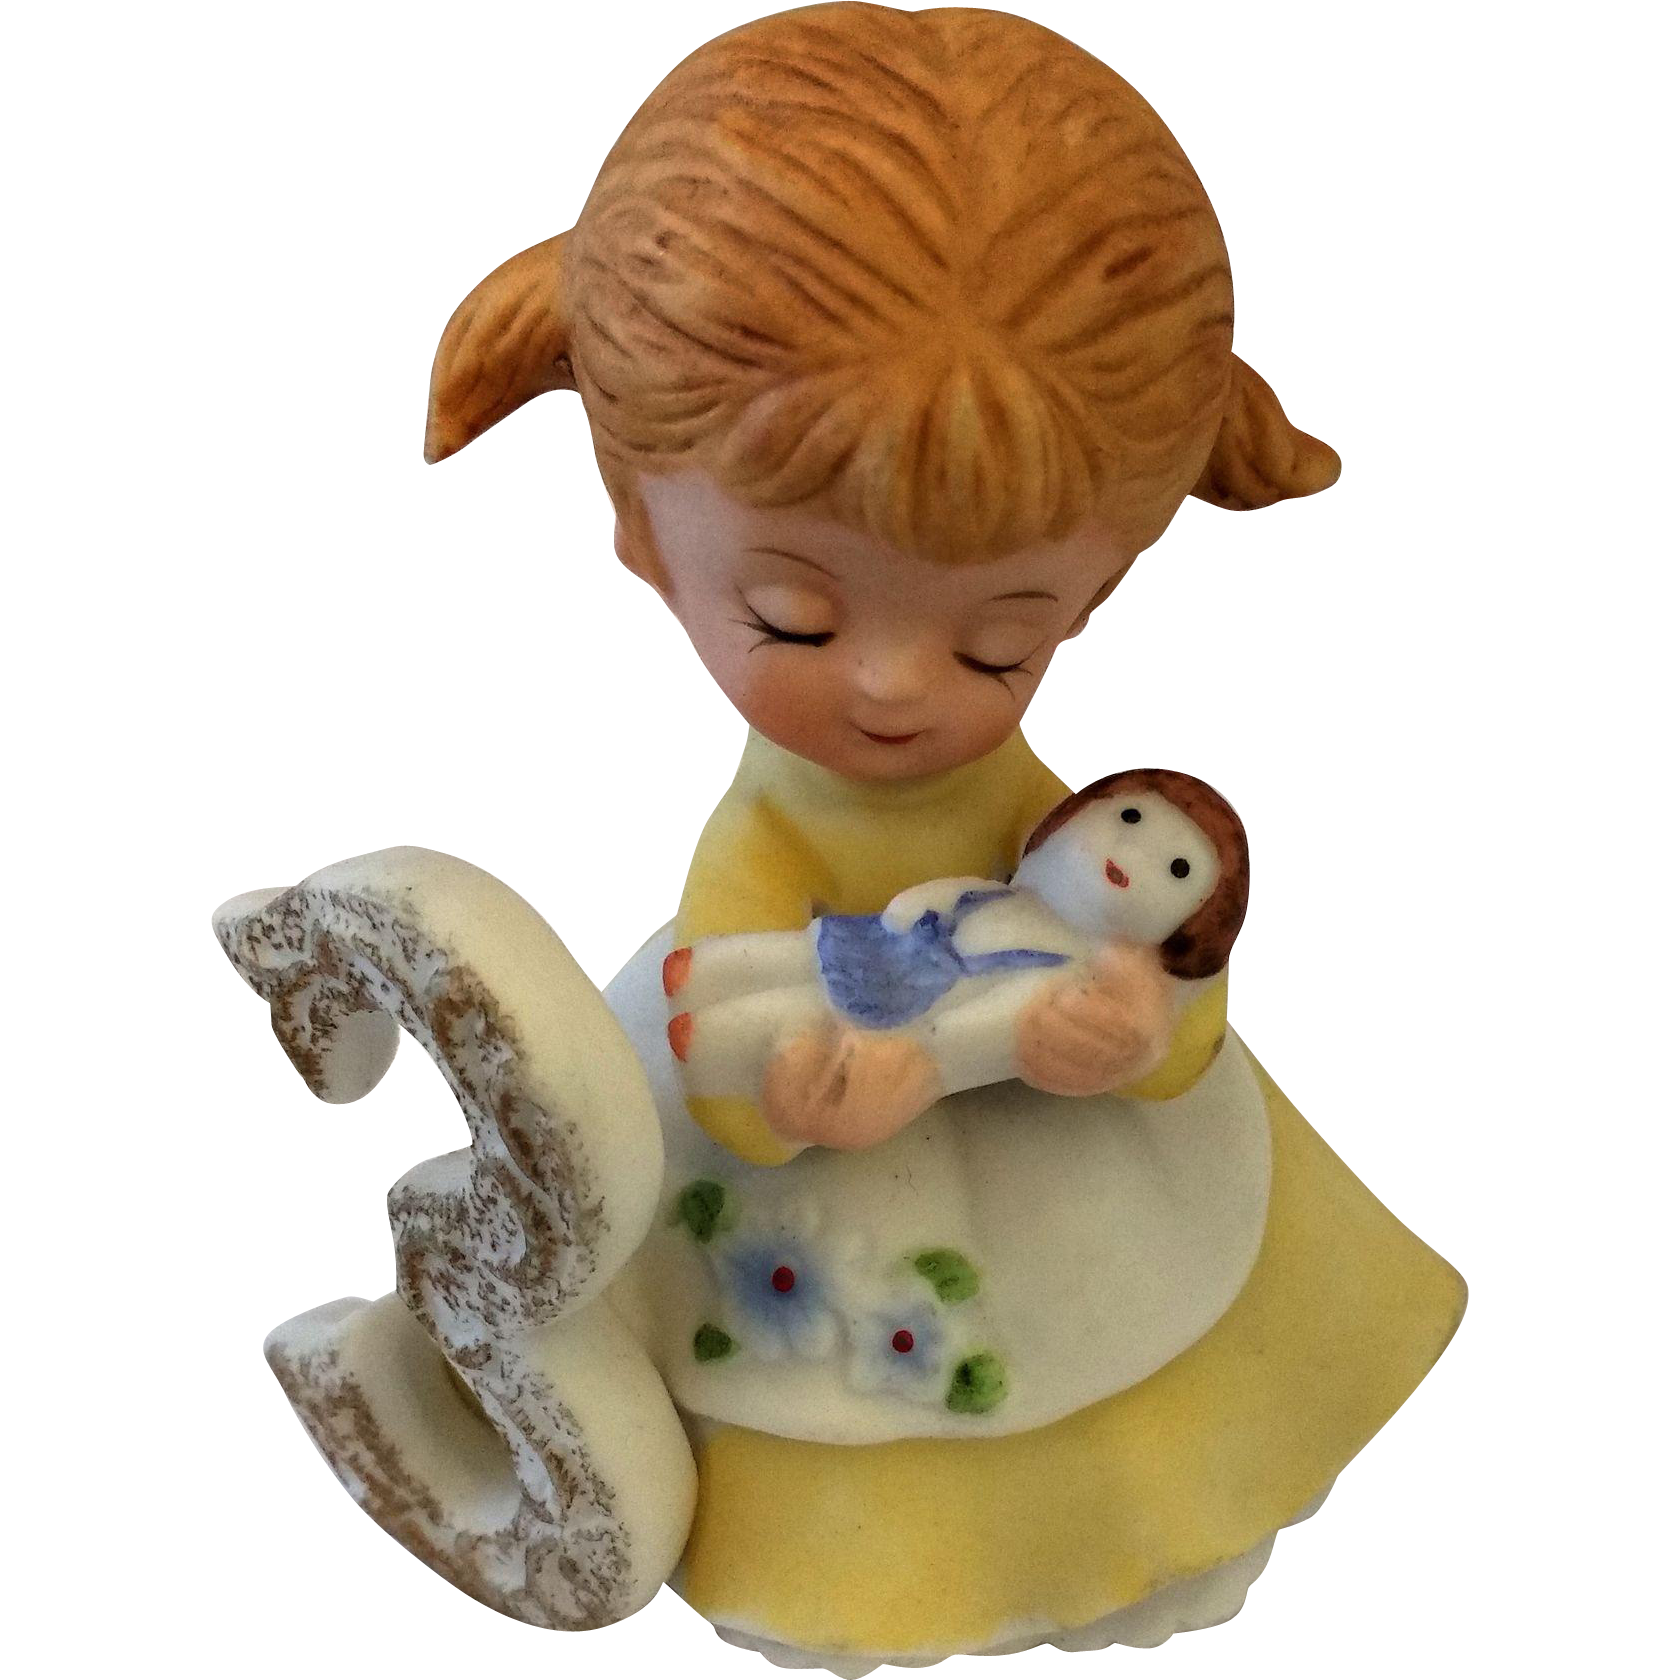 Kelvin Birthday Girl 3 Figurine Pigtails Baby Doll Porcelain Hand Painted